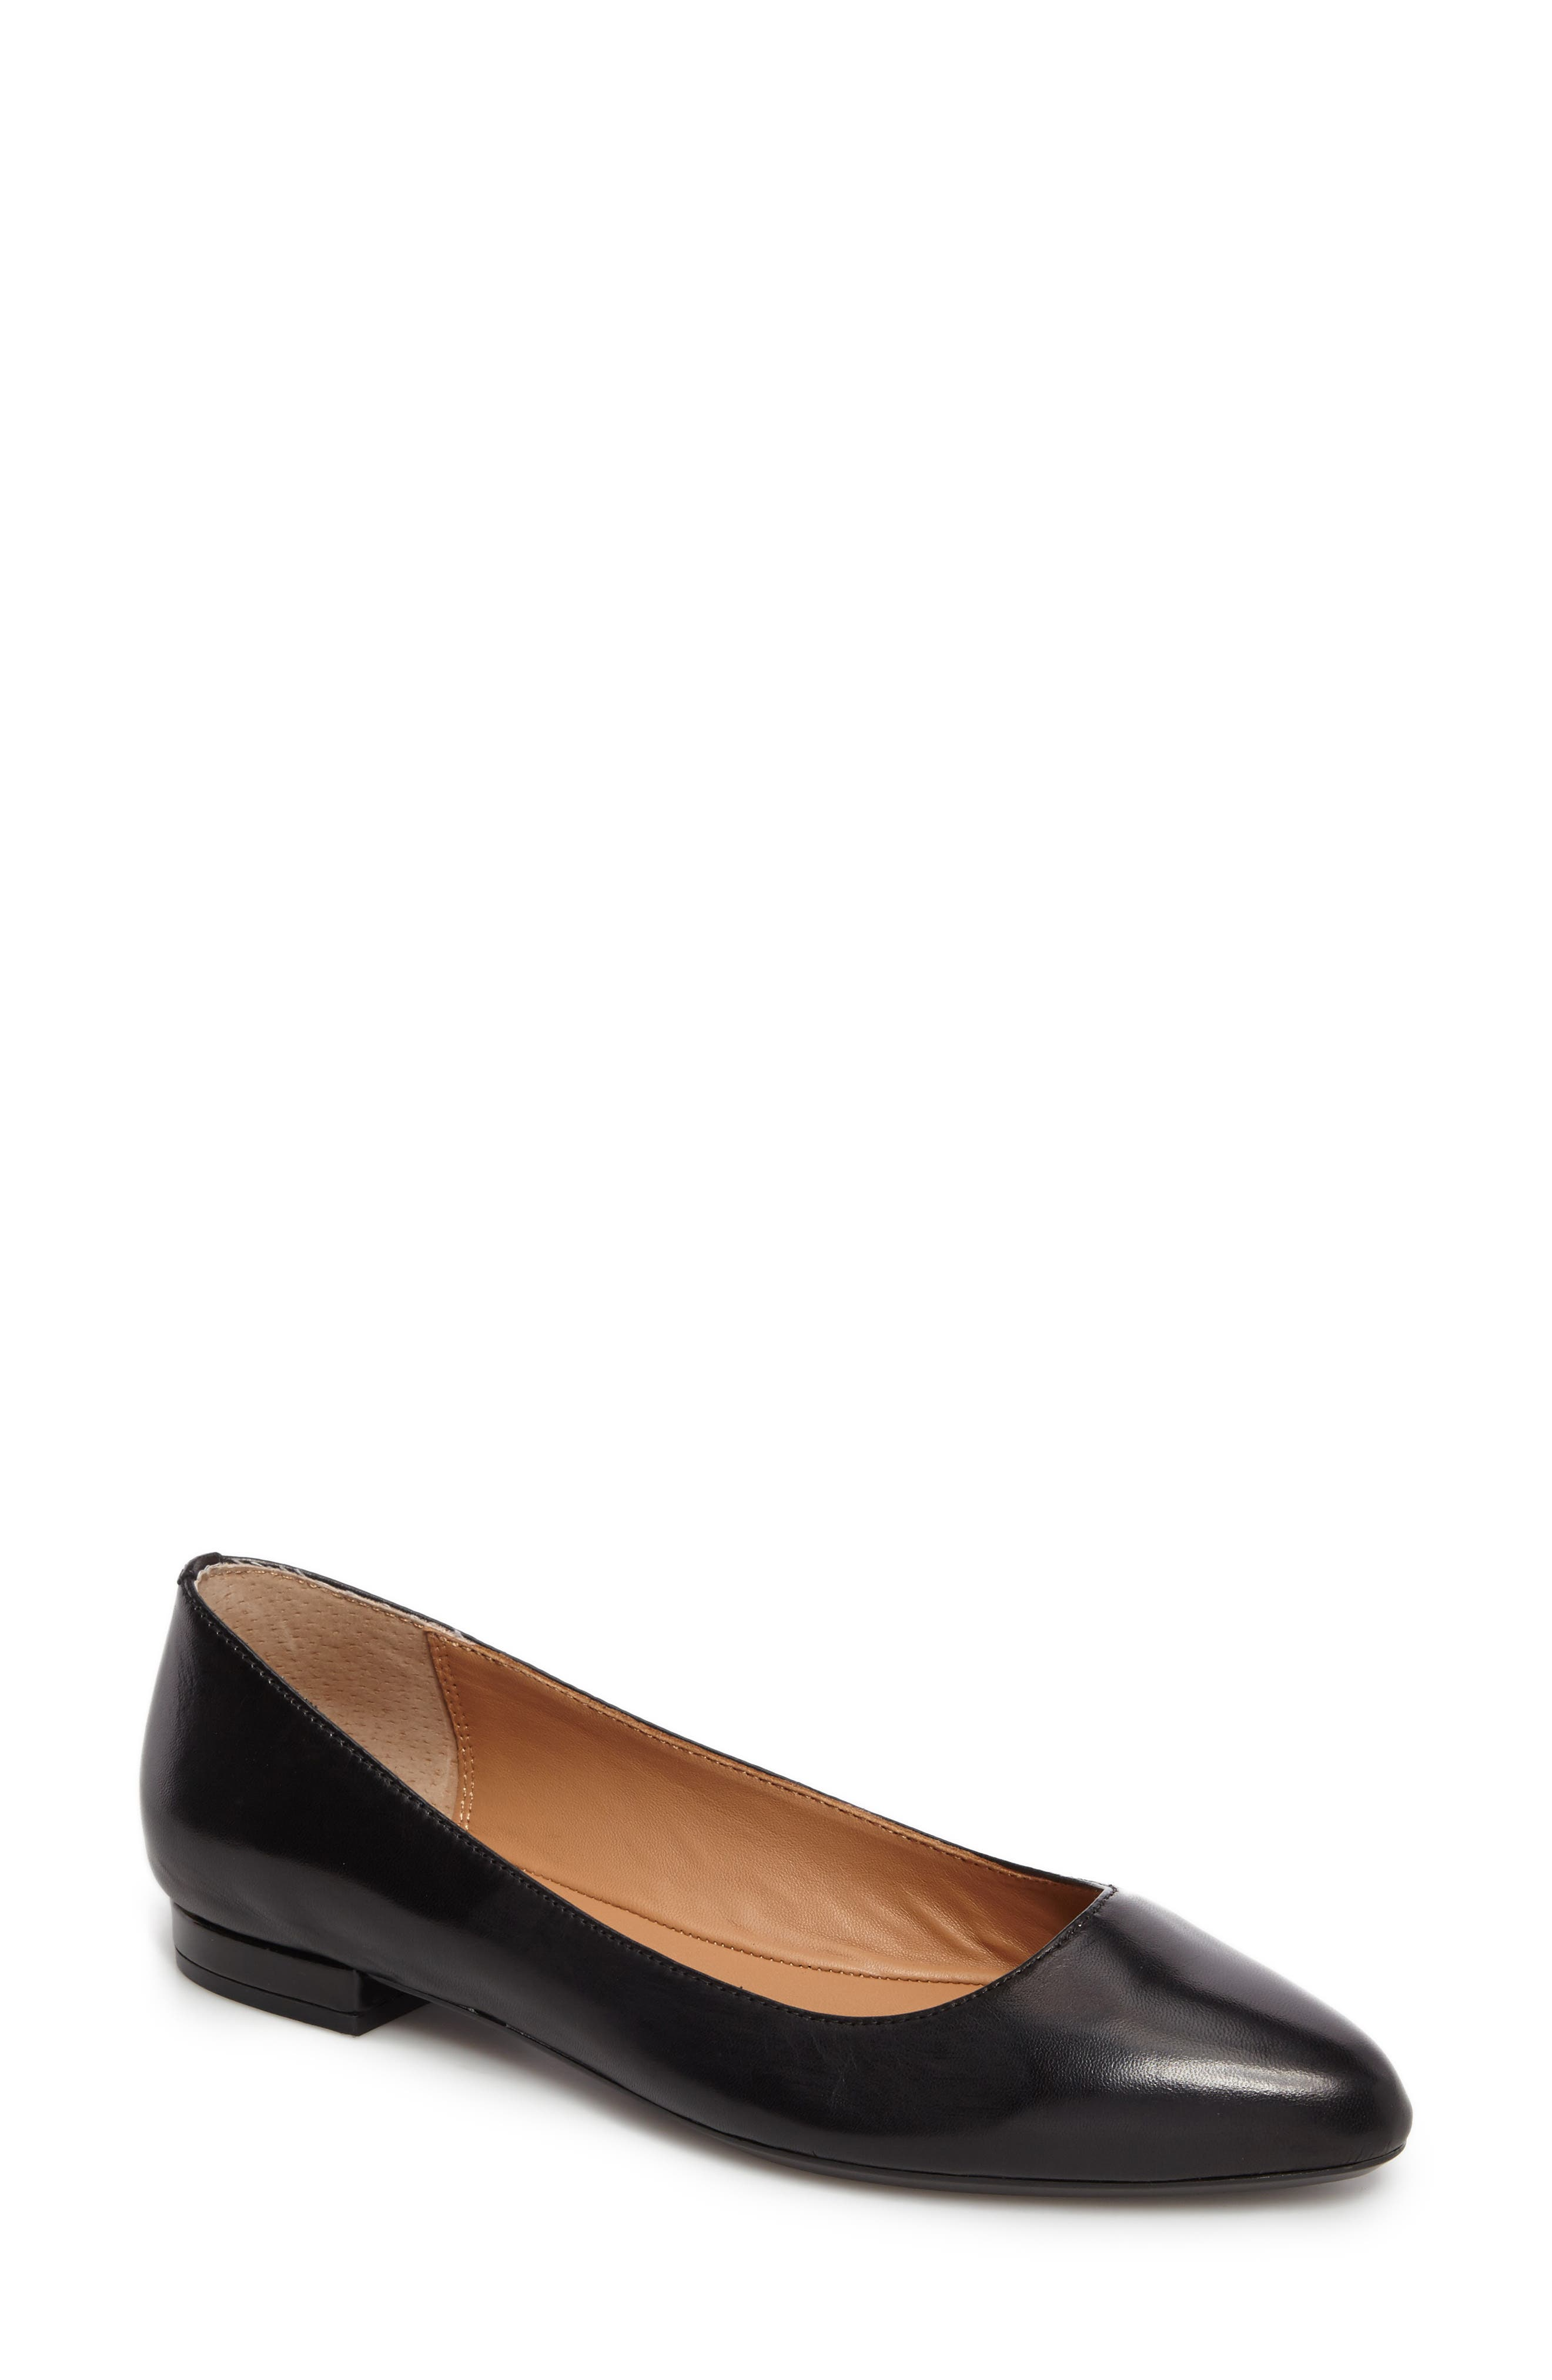 Gredel Flat,                             Main thumbnail 1, color,                             Black Leather